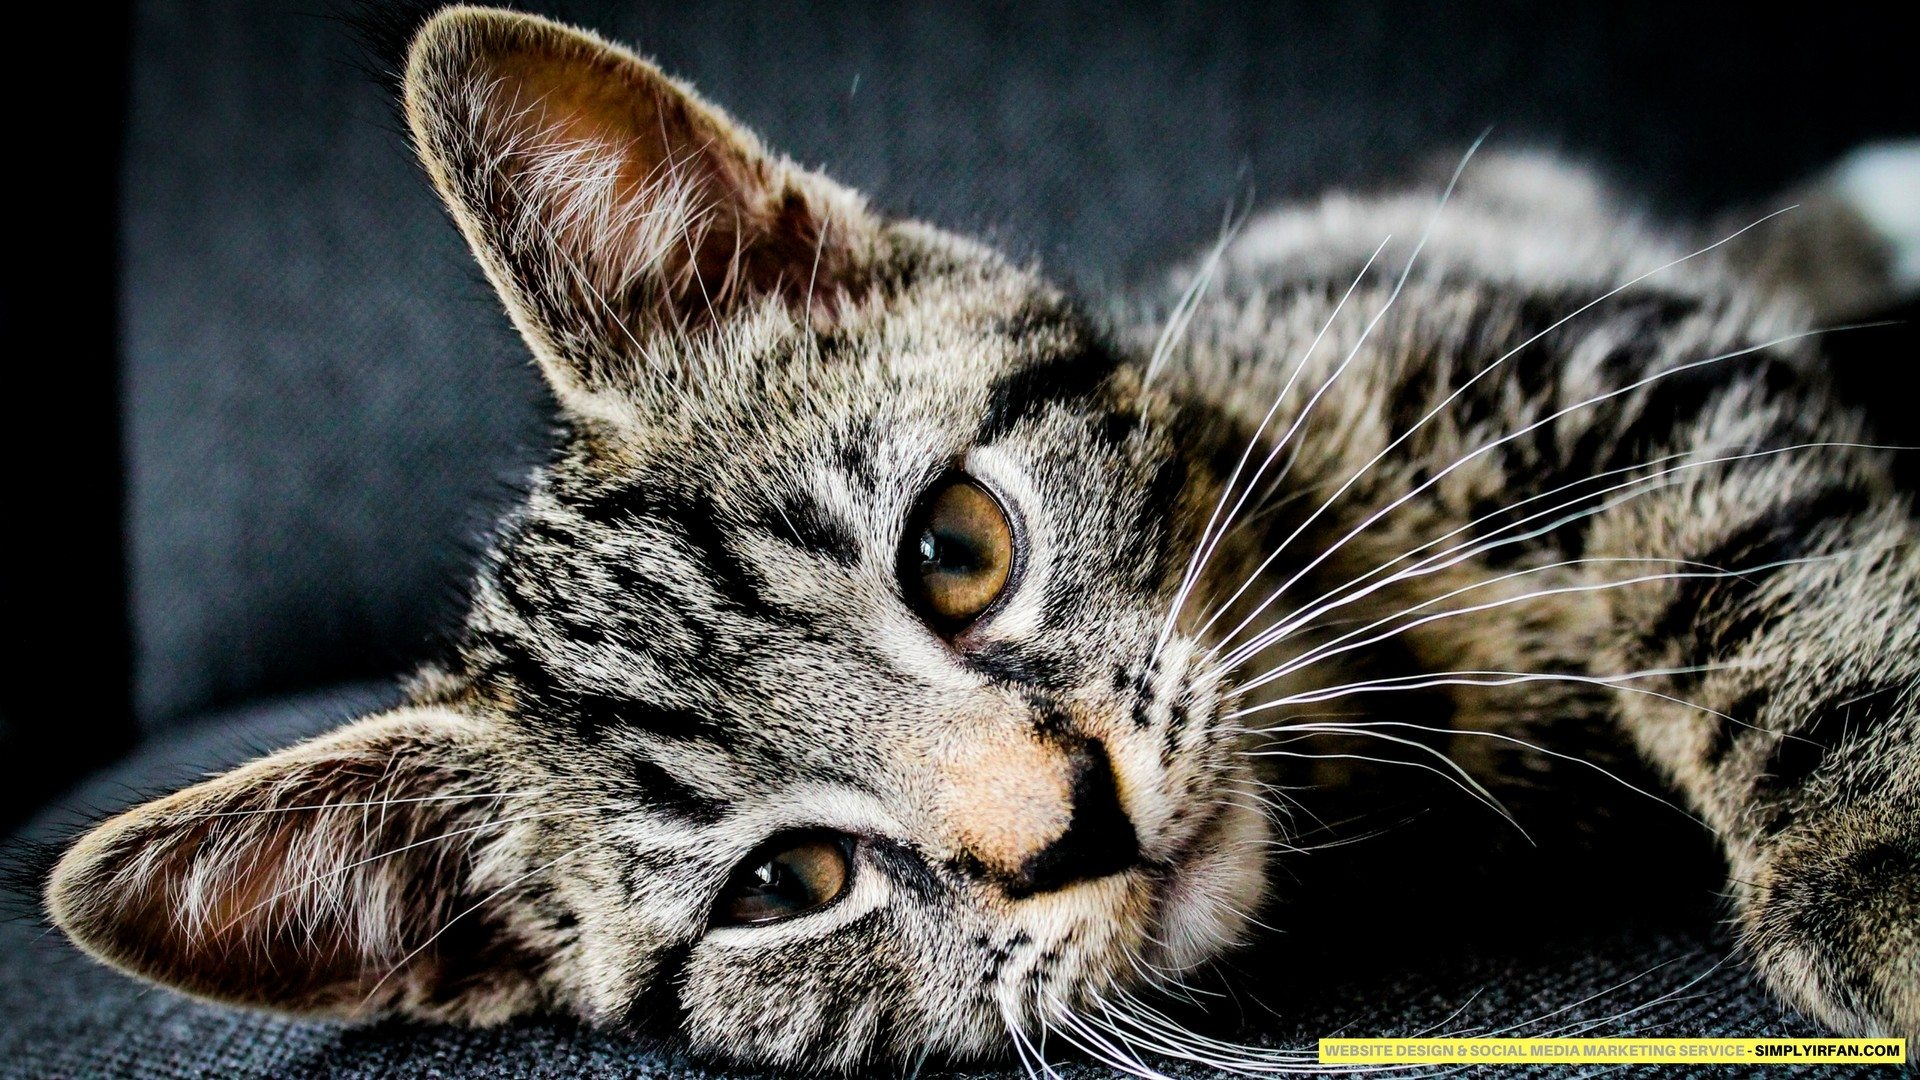 Hd Cat Wallpapers 1920x1080 69 Images